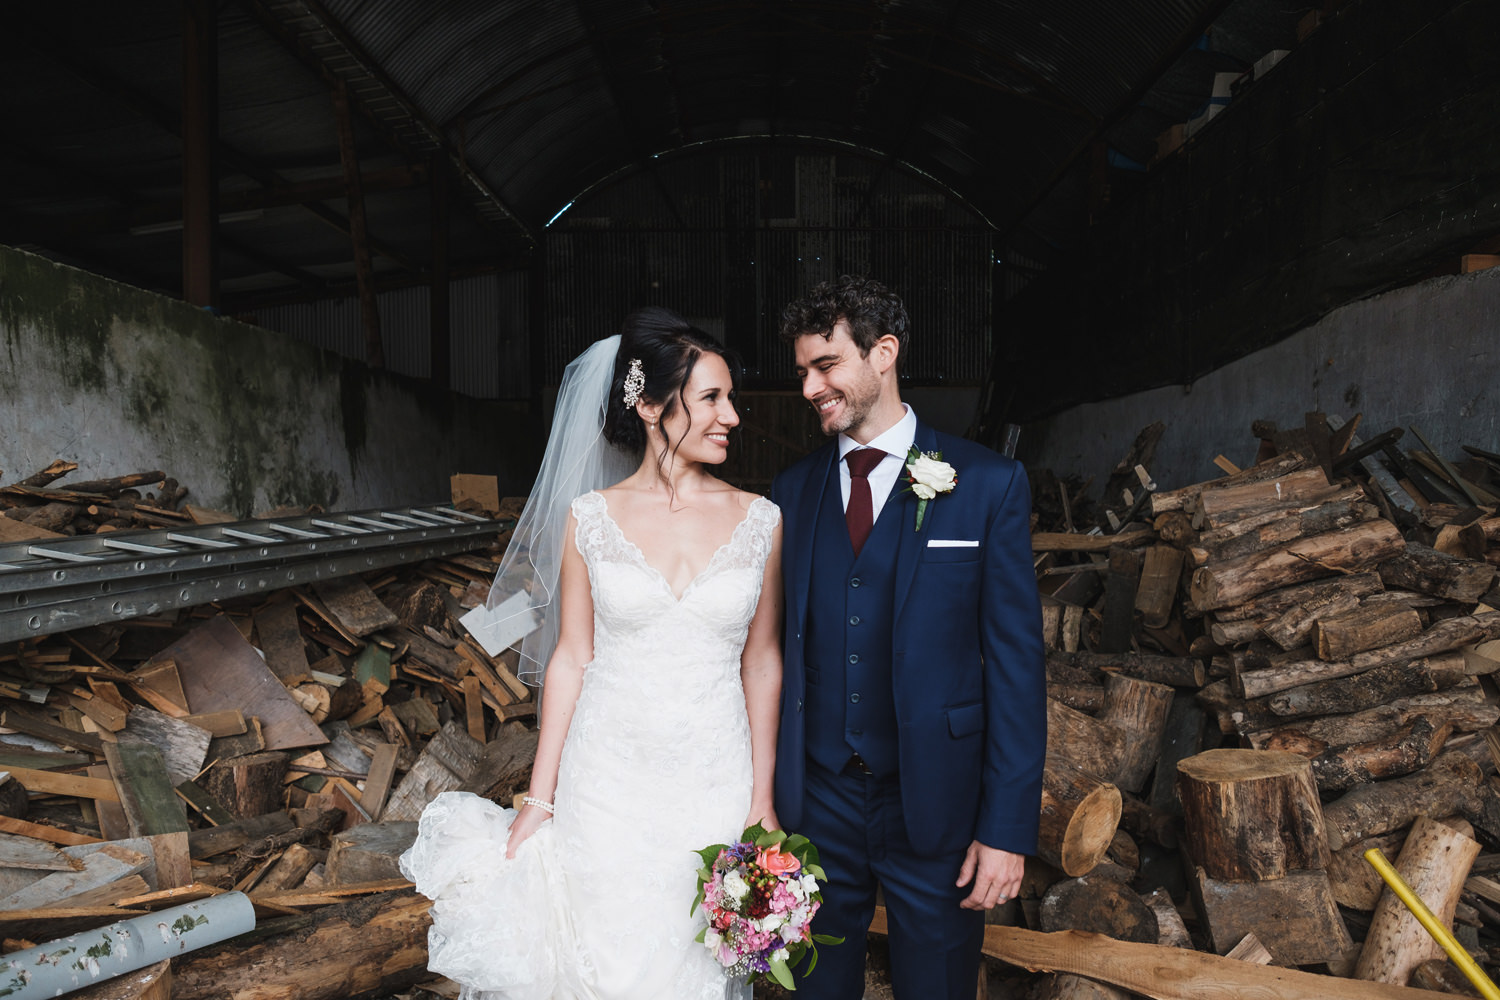 creative wedding photography by david mcclelland ireland